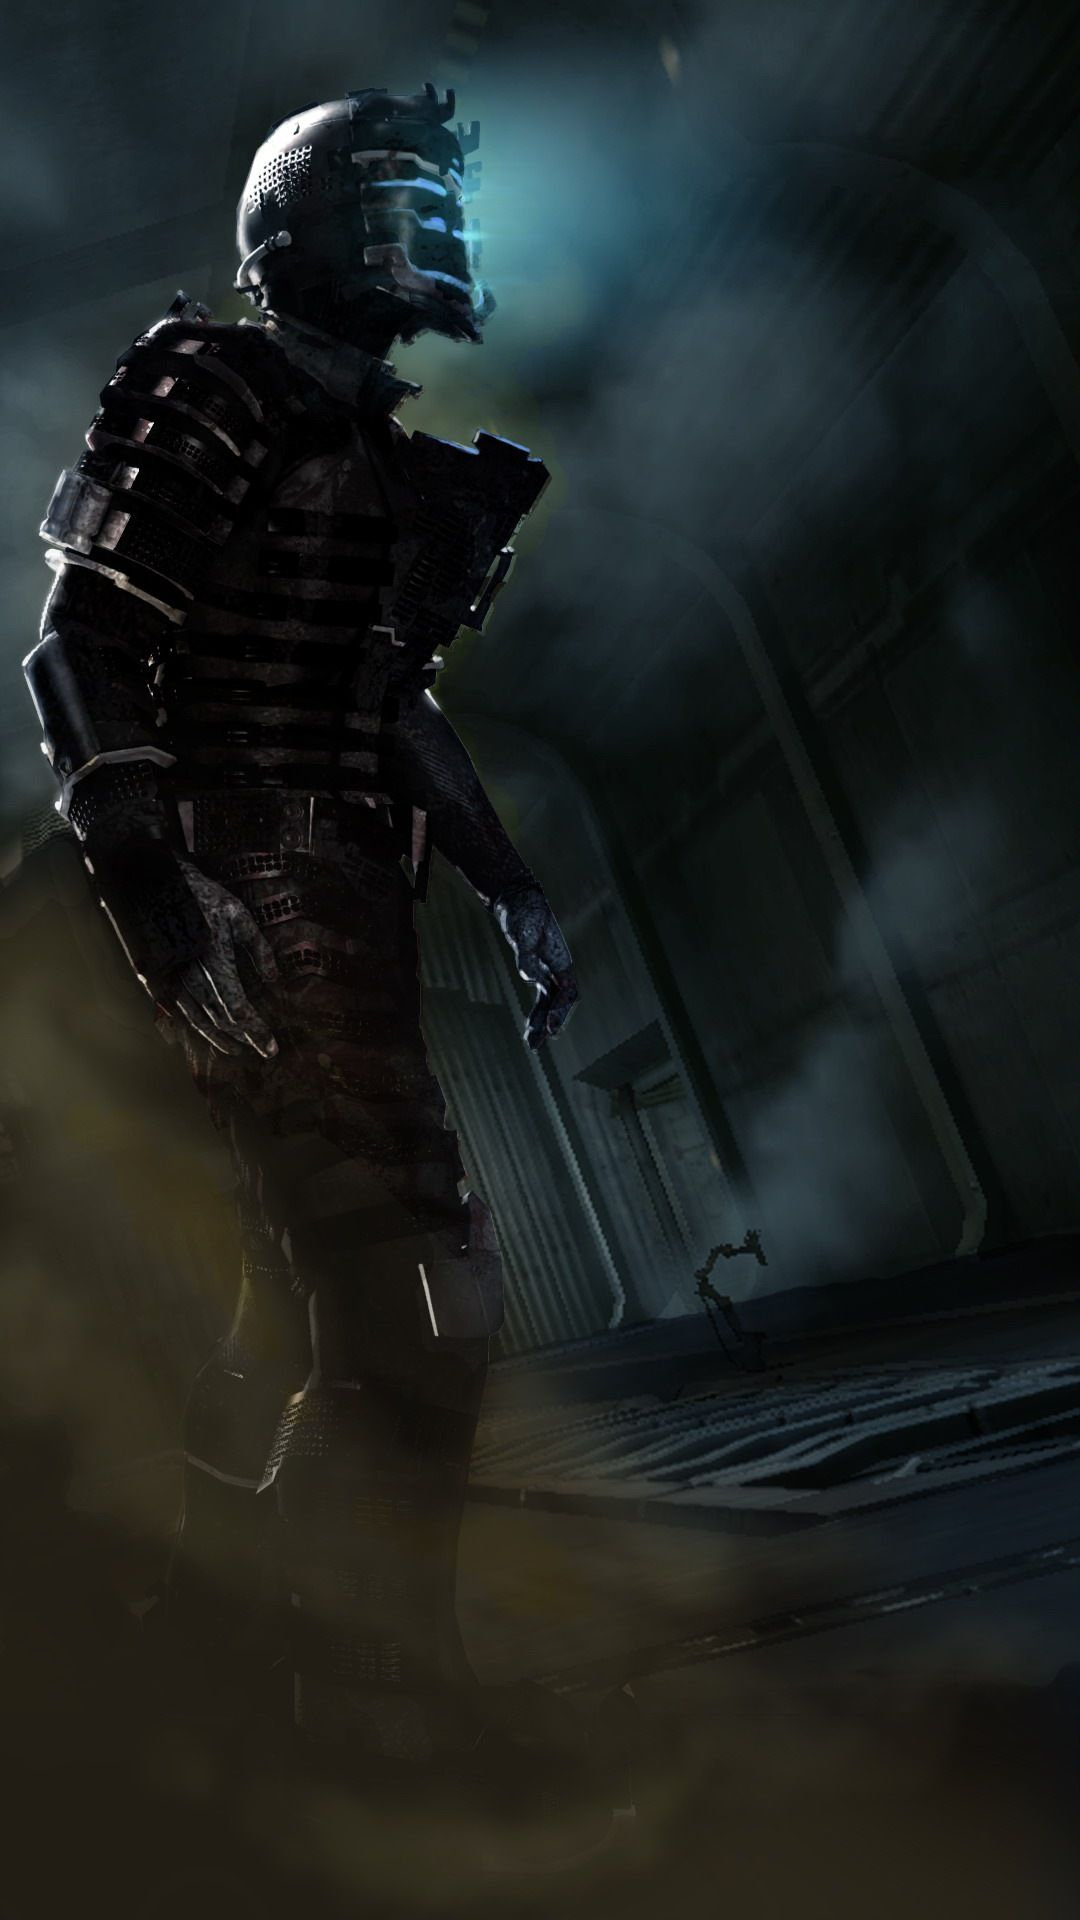 60 Marvelous Game IPhone Wallpapers For Gamers Dead Space